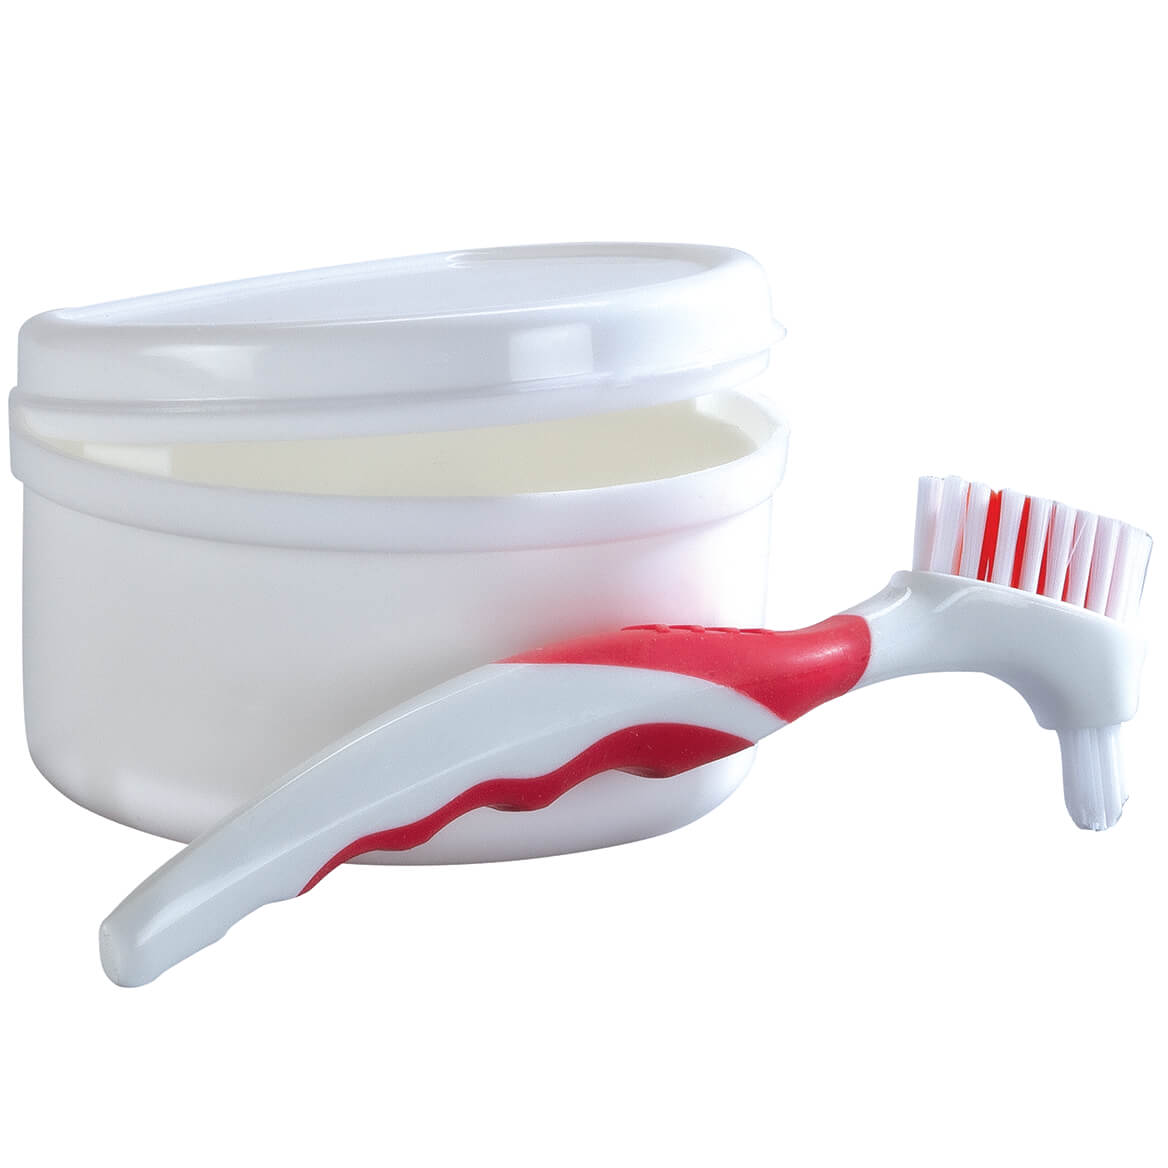 Denture Cleaning Brush and Bath with Rinse Basket Set-369250